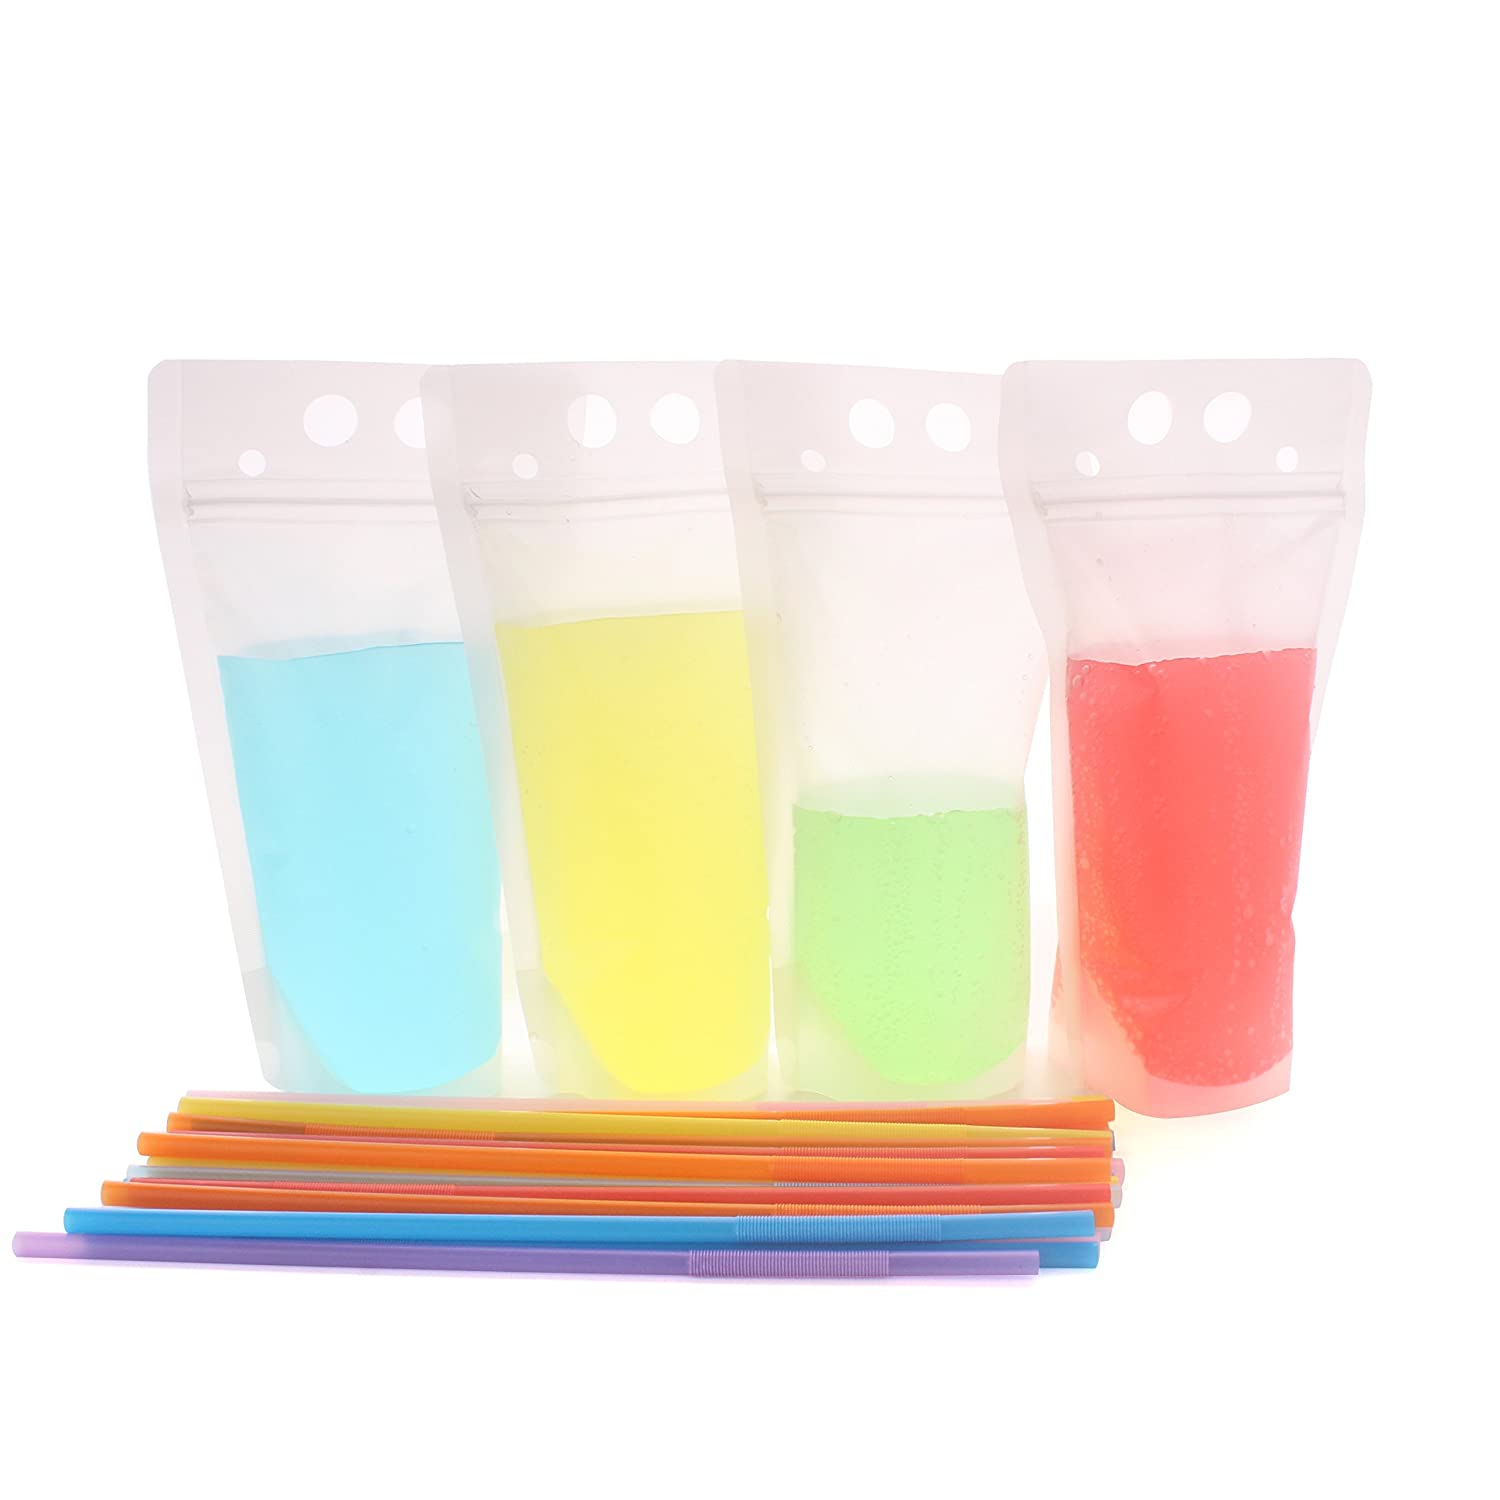 Warmbuy Reclosable Stand Up Drinks Pouches Bags with Plastic Flexible Straws, Set of 50